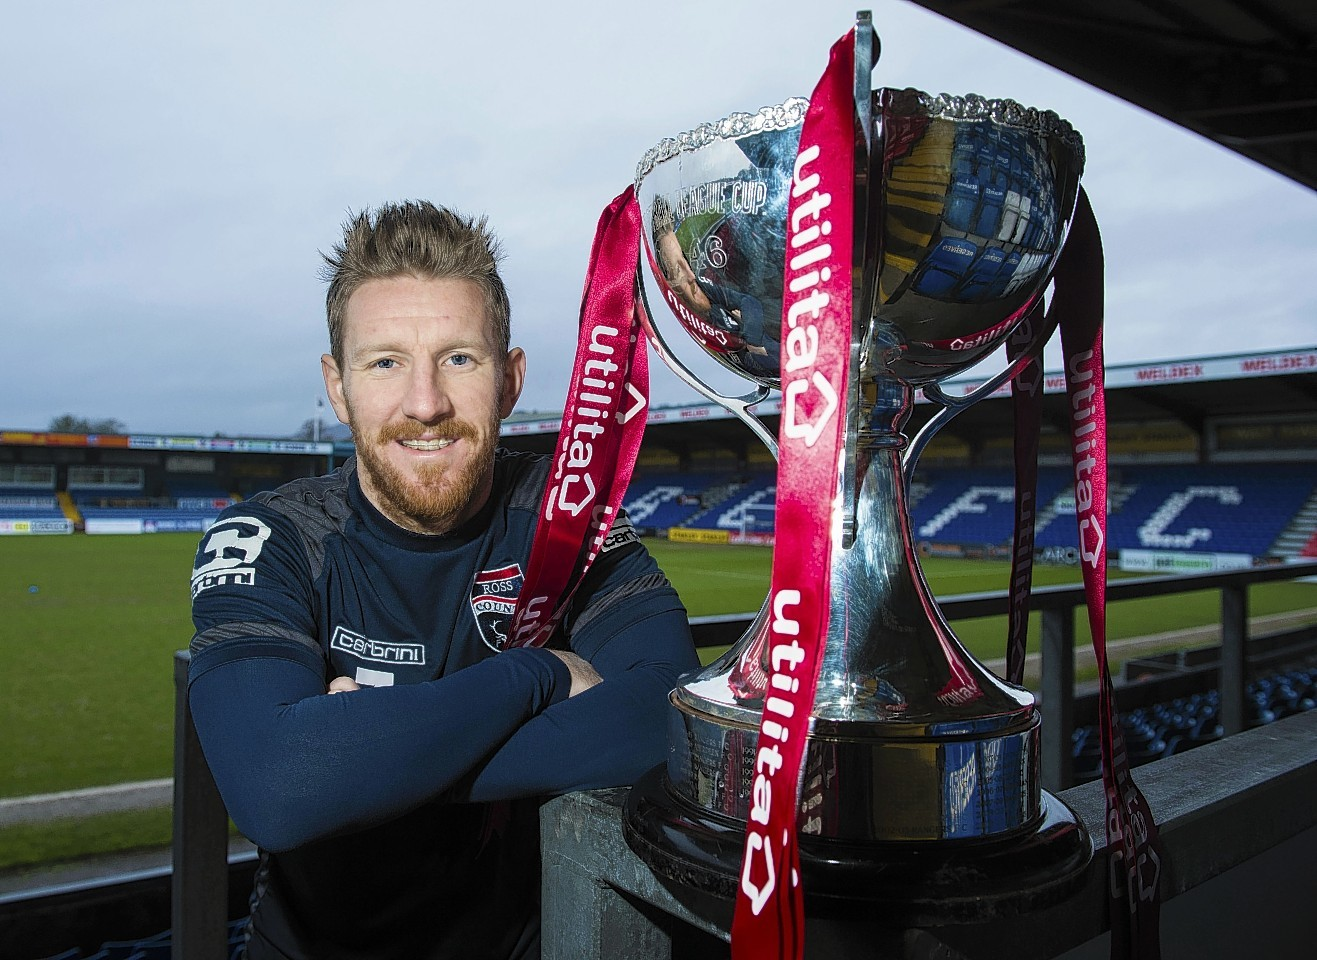 Michael Gardyne is eager to get his hands on the League Cup trophy.